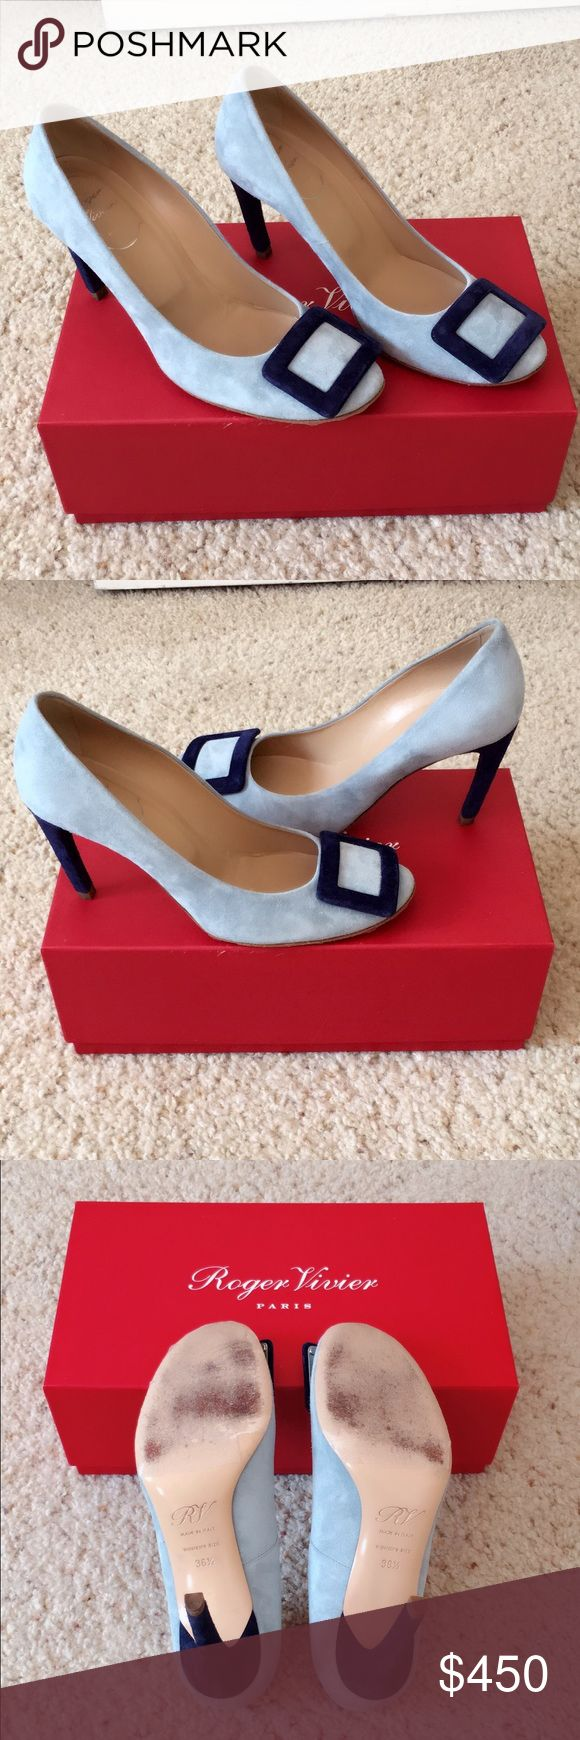 Roger Vivier Blue Suede Pumps Authentic. Runs large. Gently used. Any question, message me😊 Roger Vivier Shoes Heels